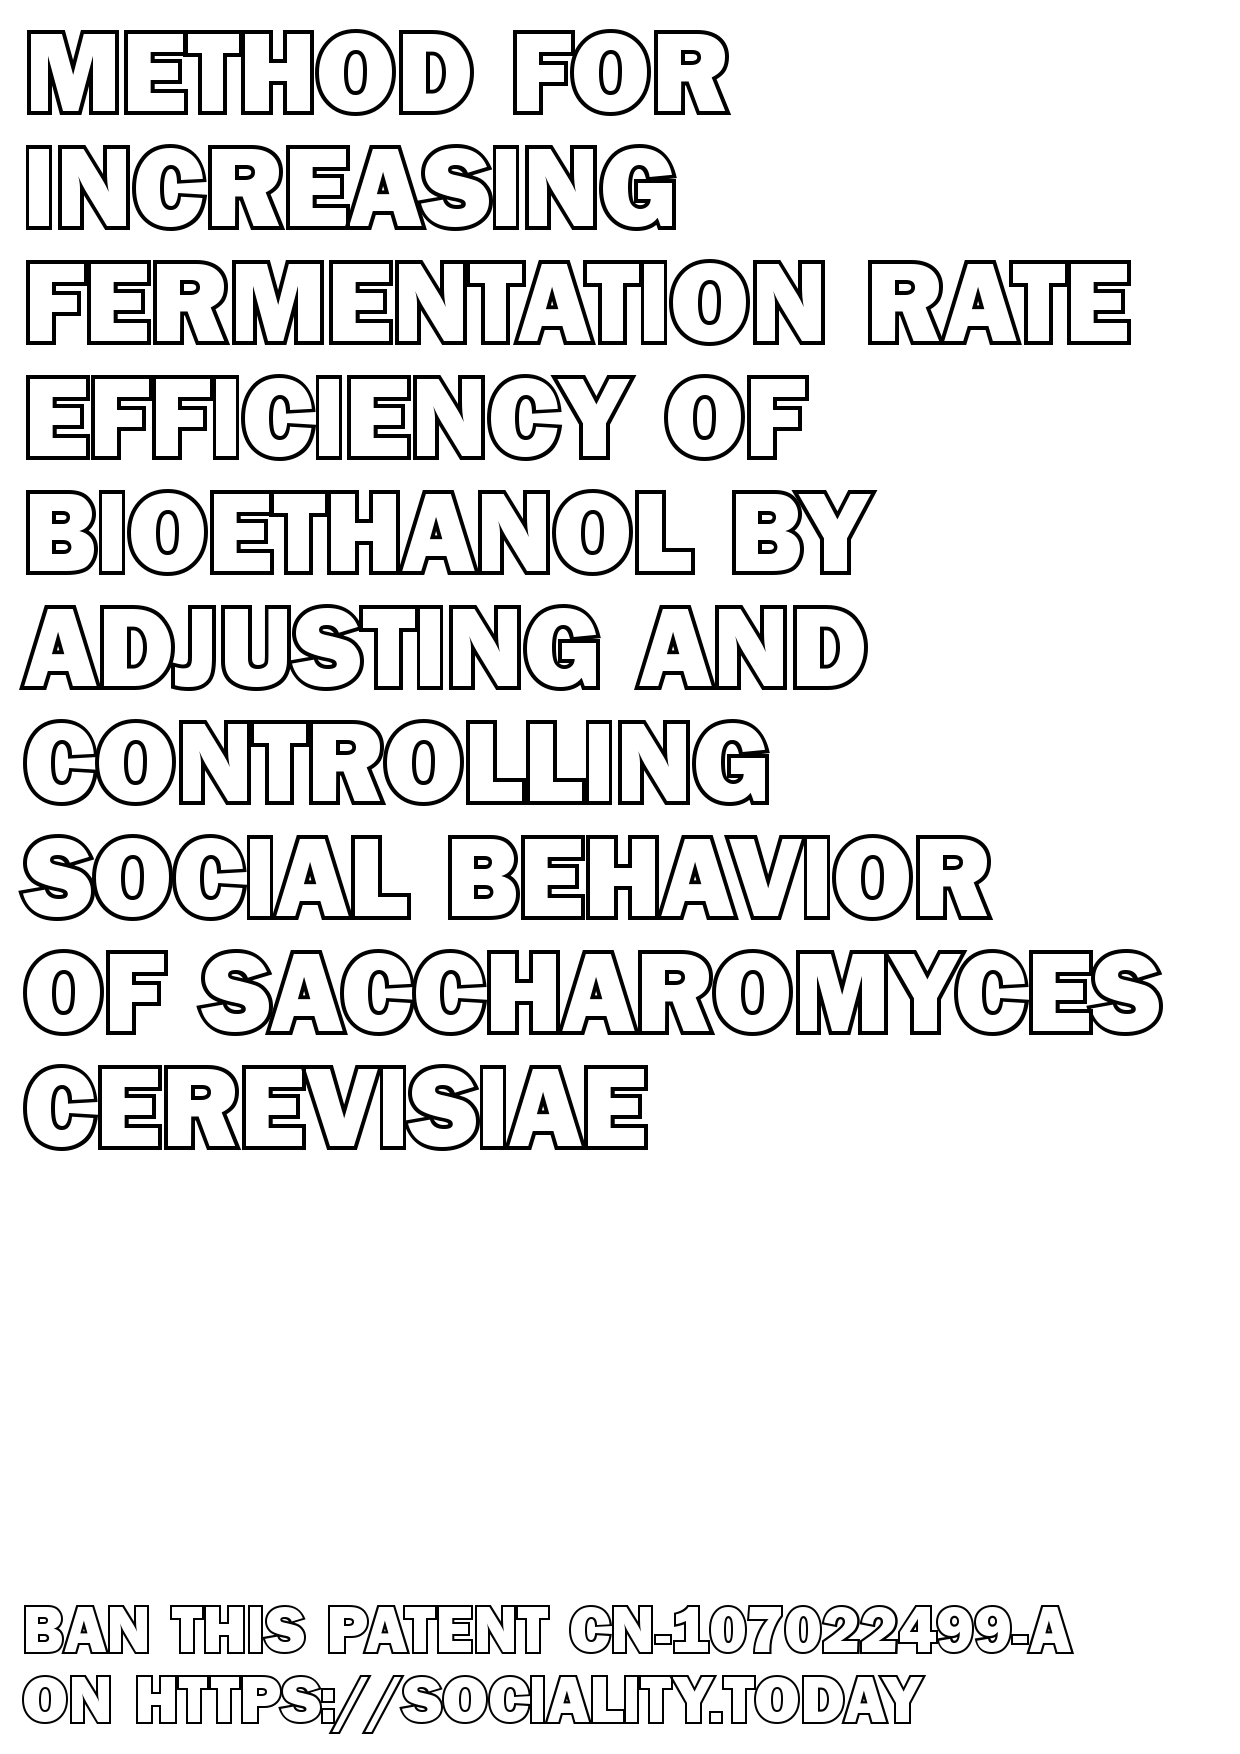 Method for increasing fermentation rate efficiency of bioethanol by adjusting and controlling social behavior of saccharomyces cerevisiae  - CN-107022499-A